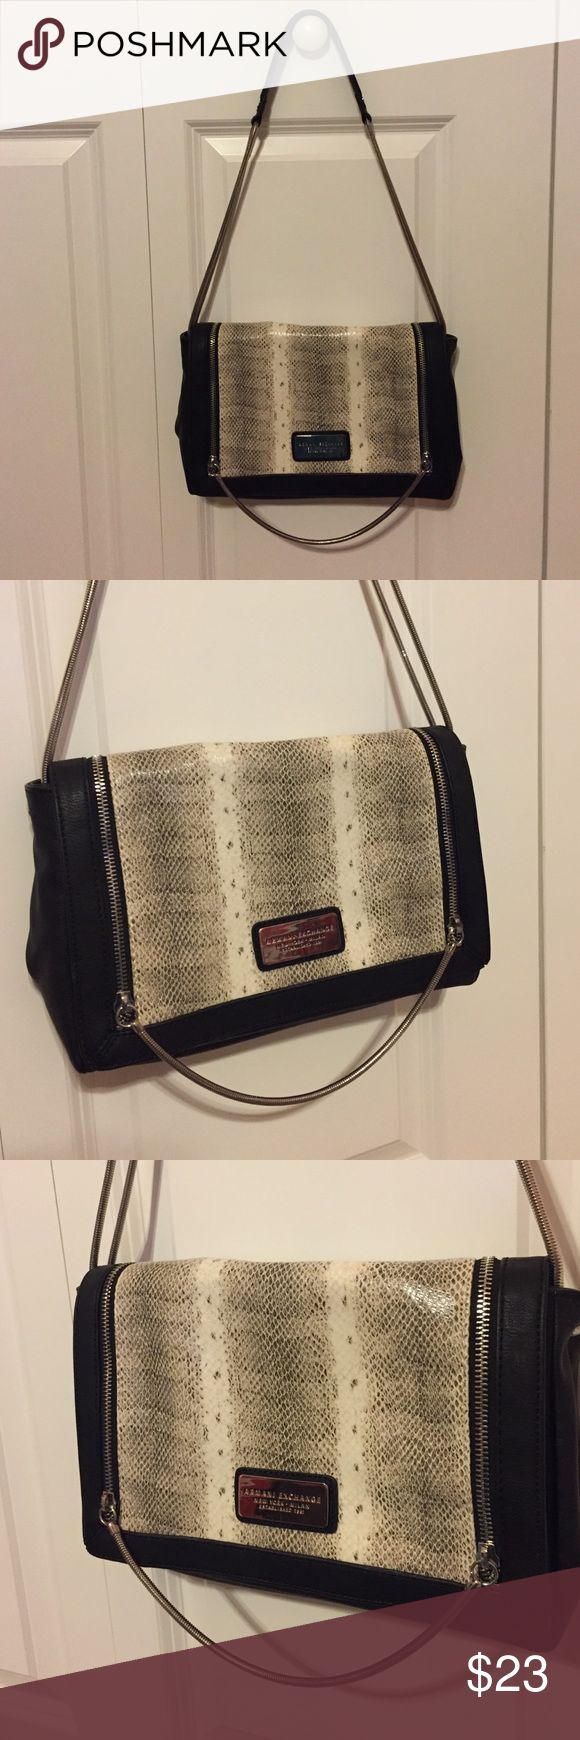 Armani Exchange purse Fashionable black and snakeskin (white) bag. Zipper aligning through front. Never worn but no tag. Armani Exchange Bags Shoulder Bags